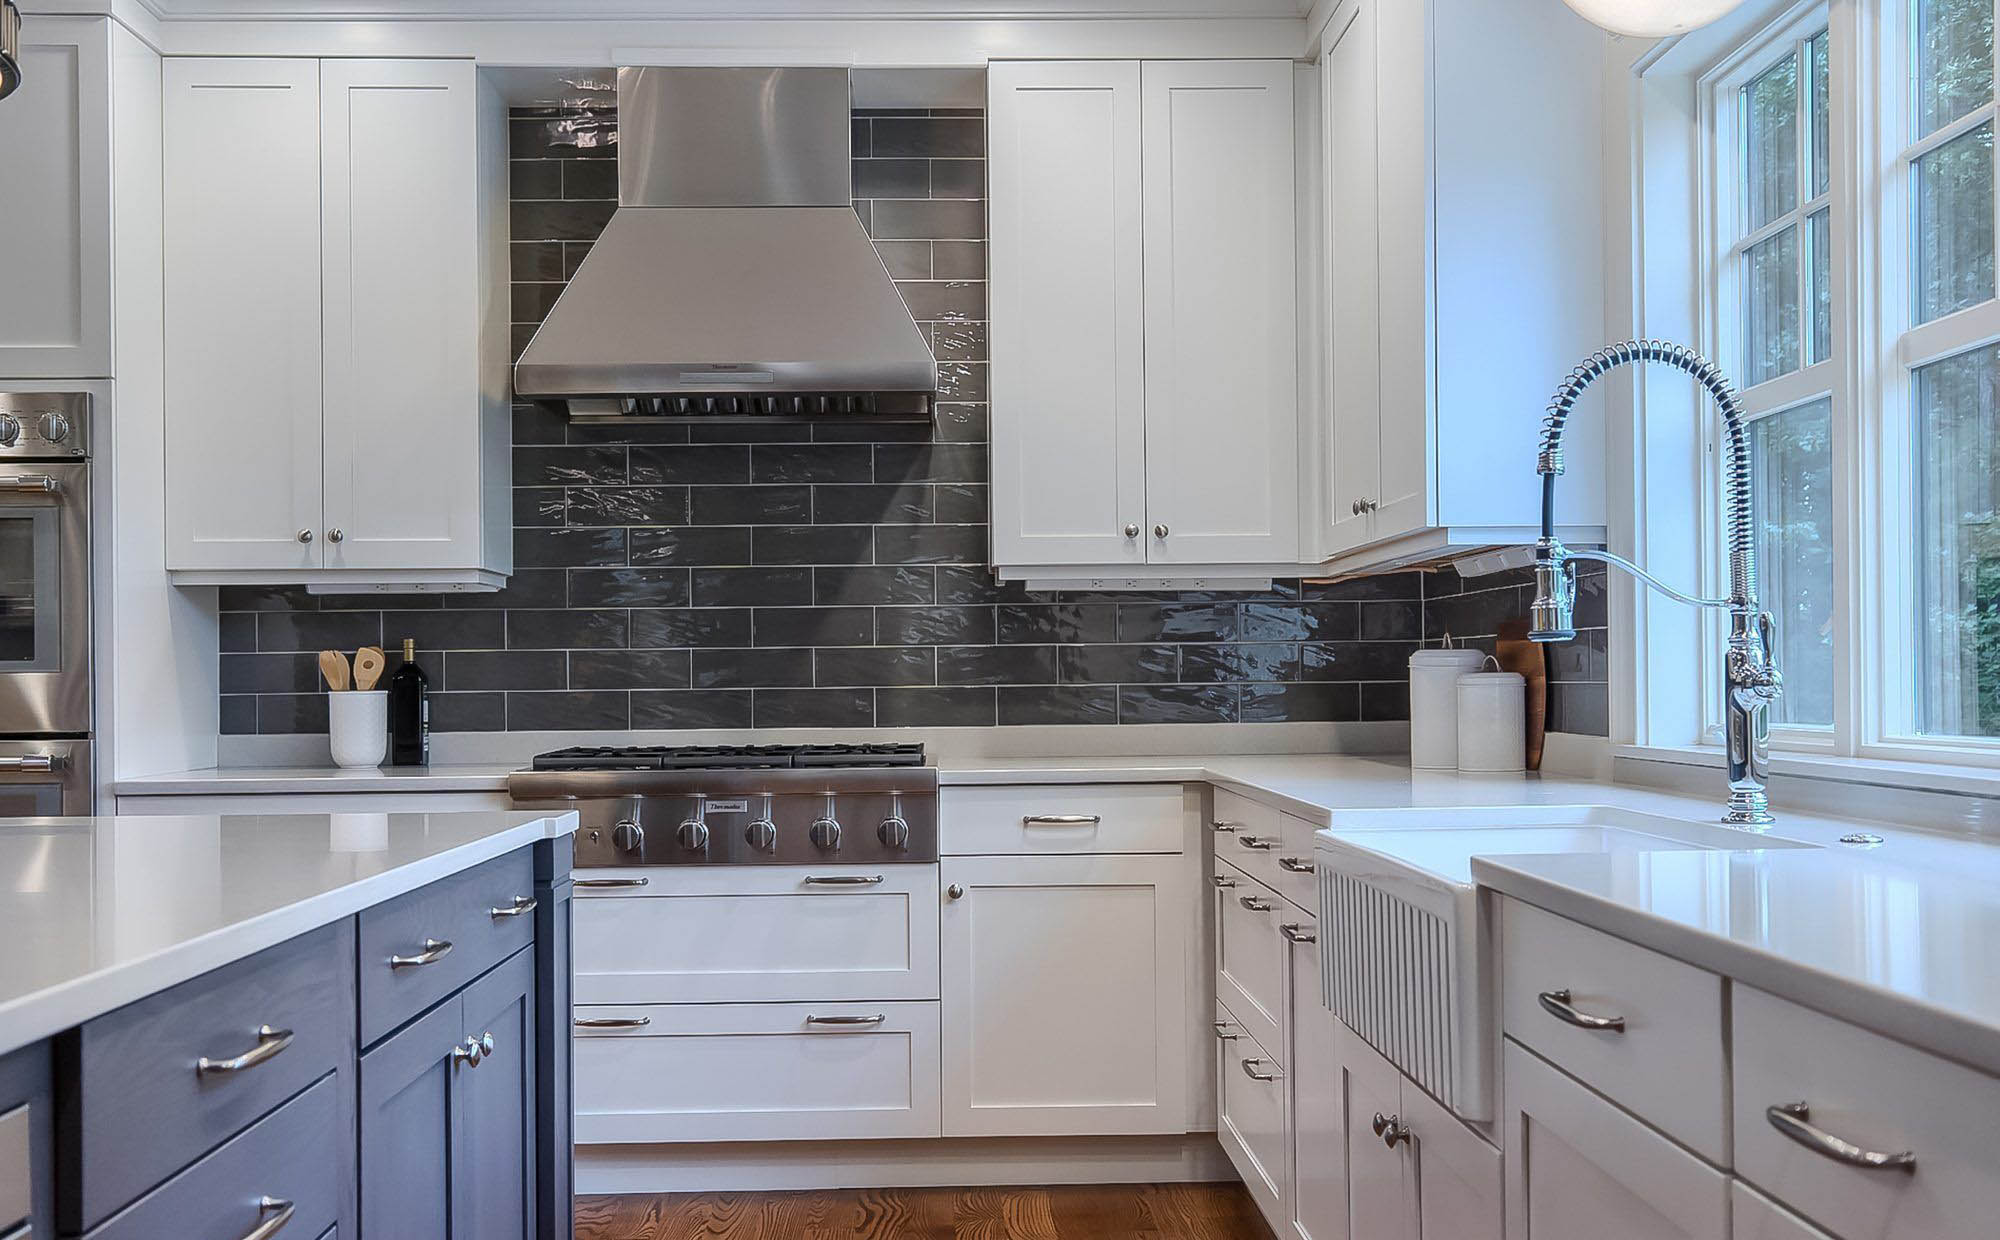 Gray quartz countertops with white cabinets and blue center island. Dark gray subway backsplash tiles.